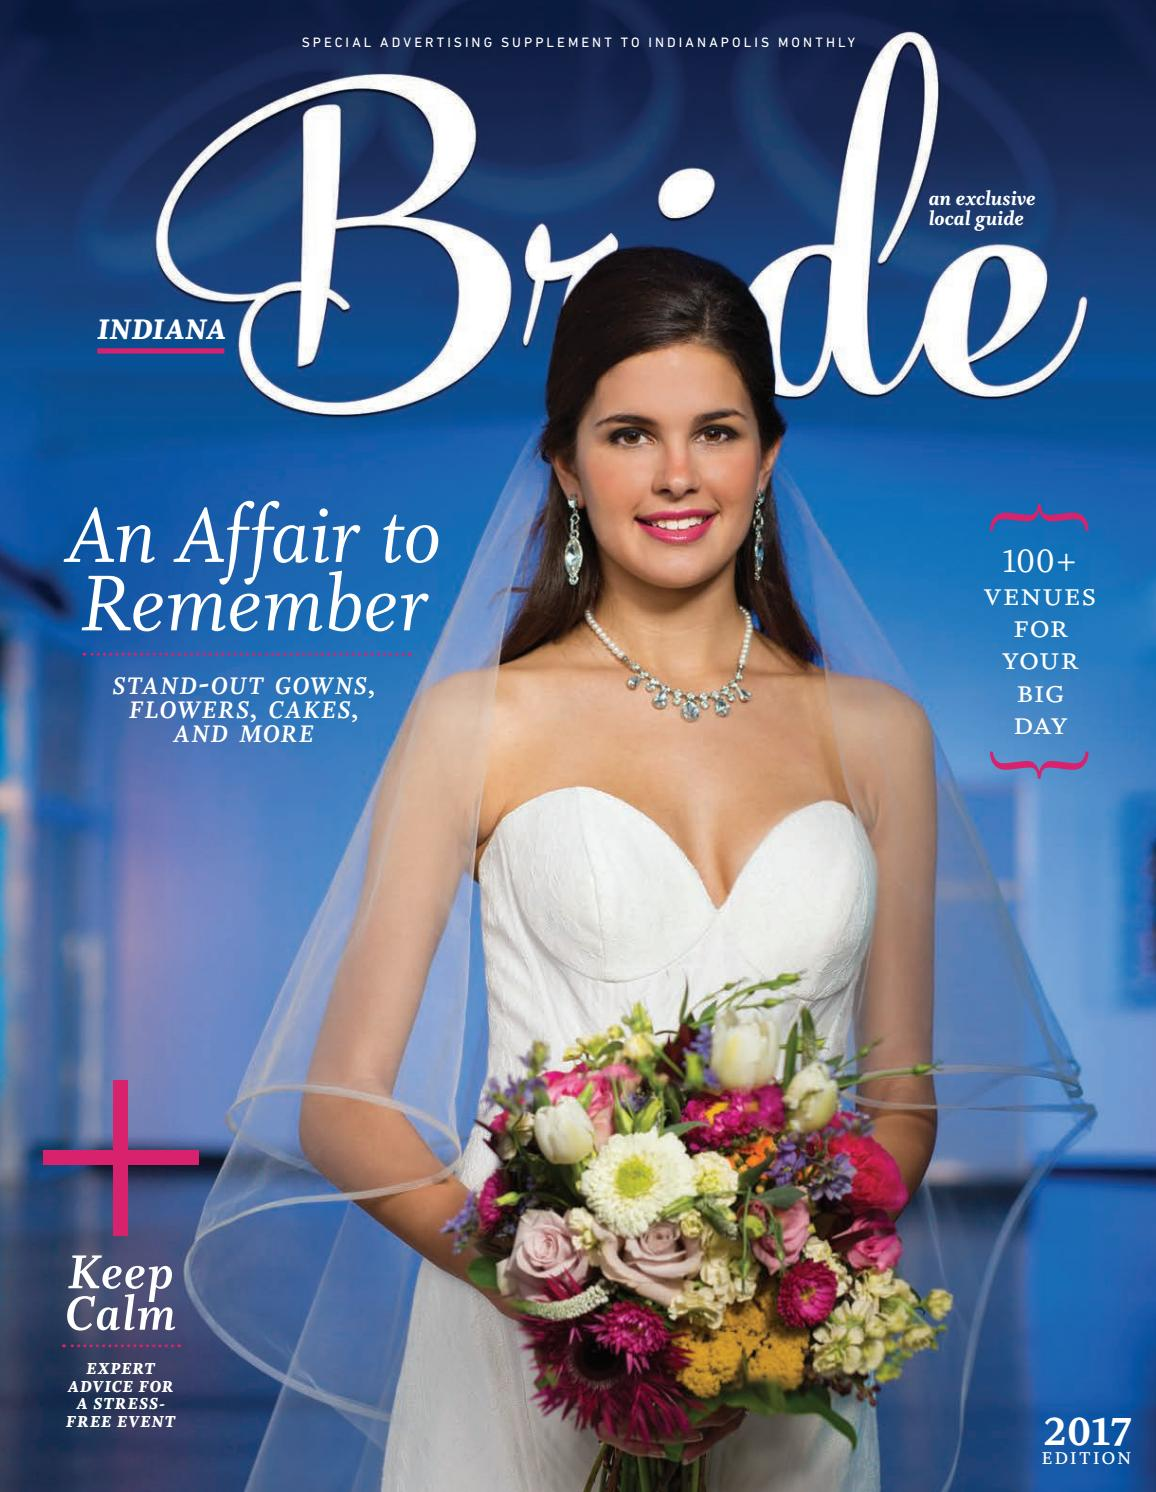 0150e2c7d84 2017 indianapolis Monthly Bride by Indianapolis Monthly - issuu